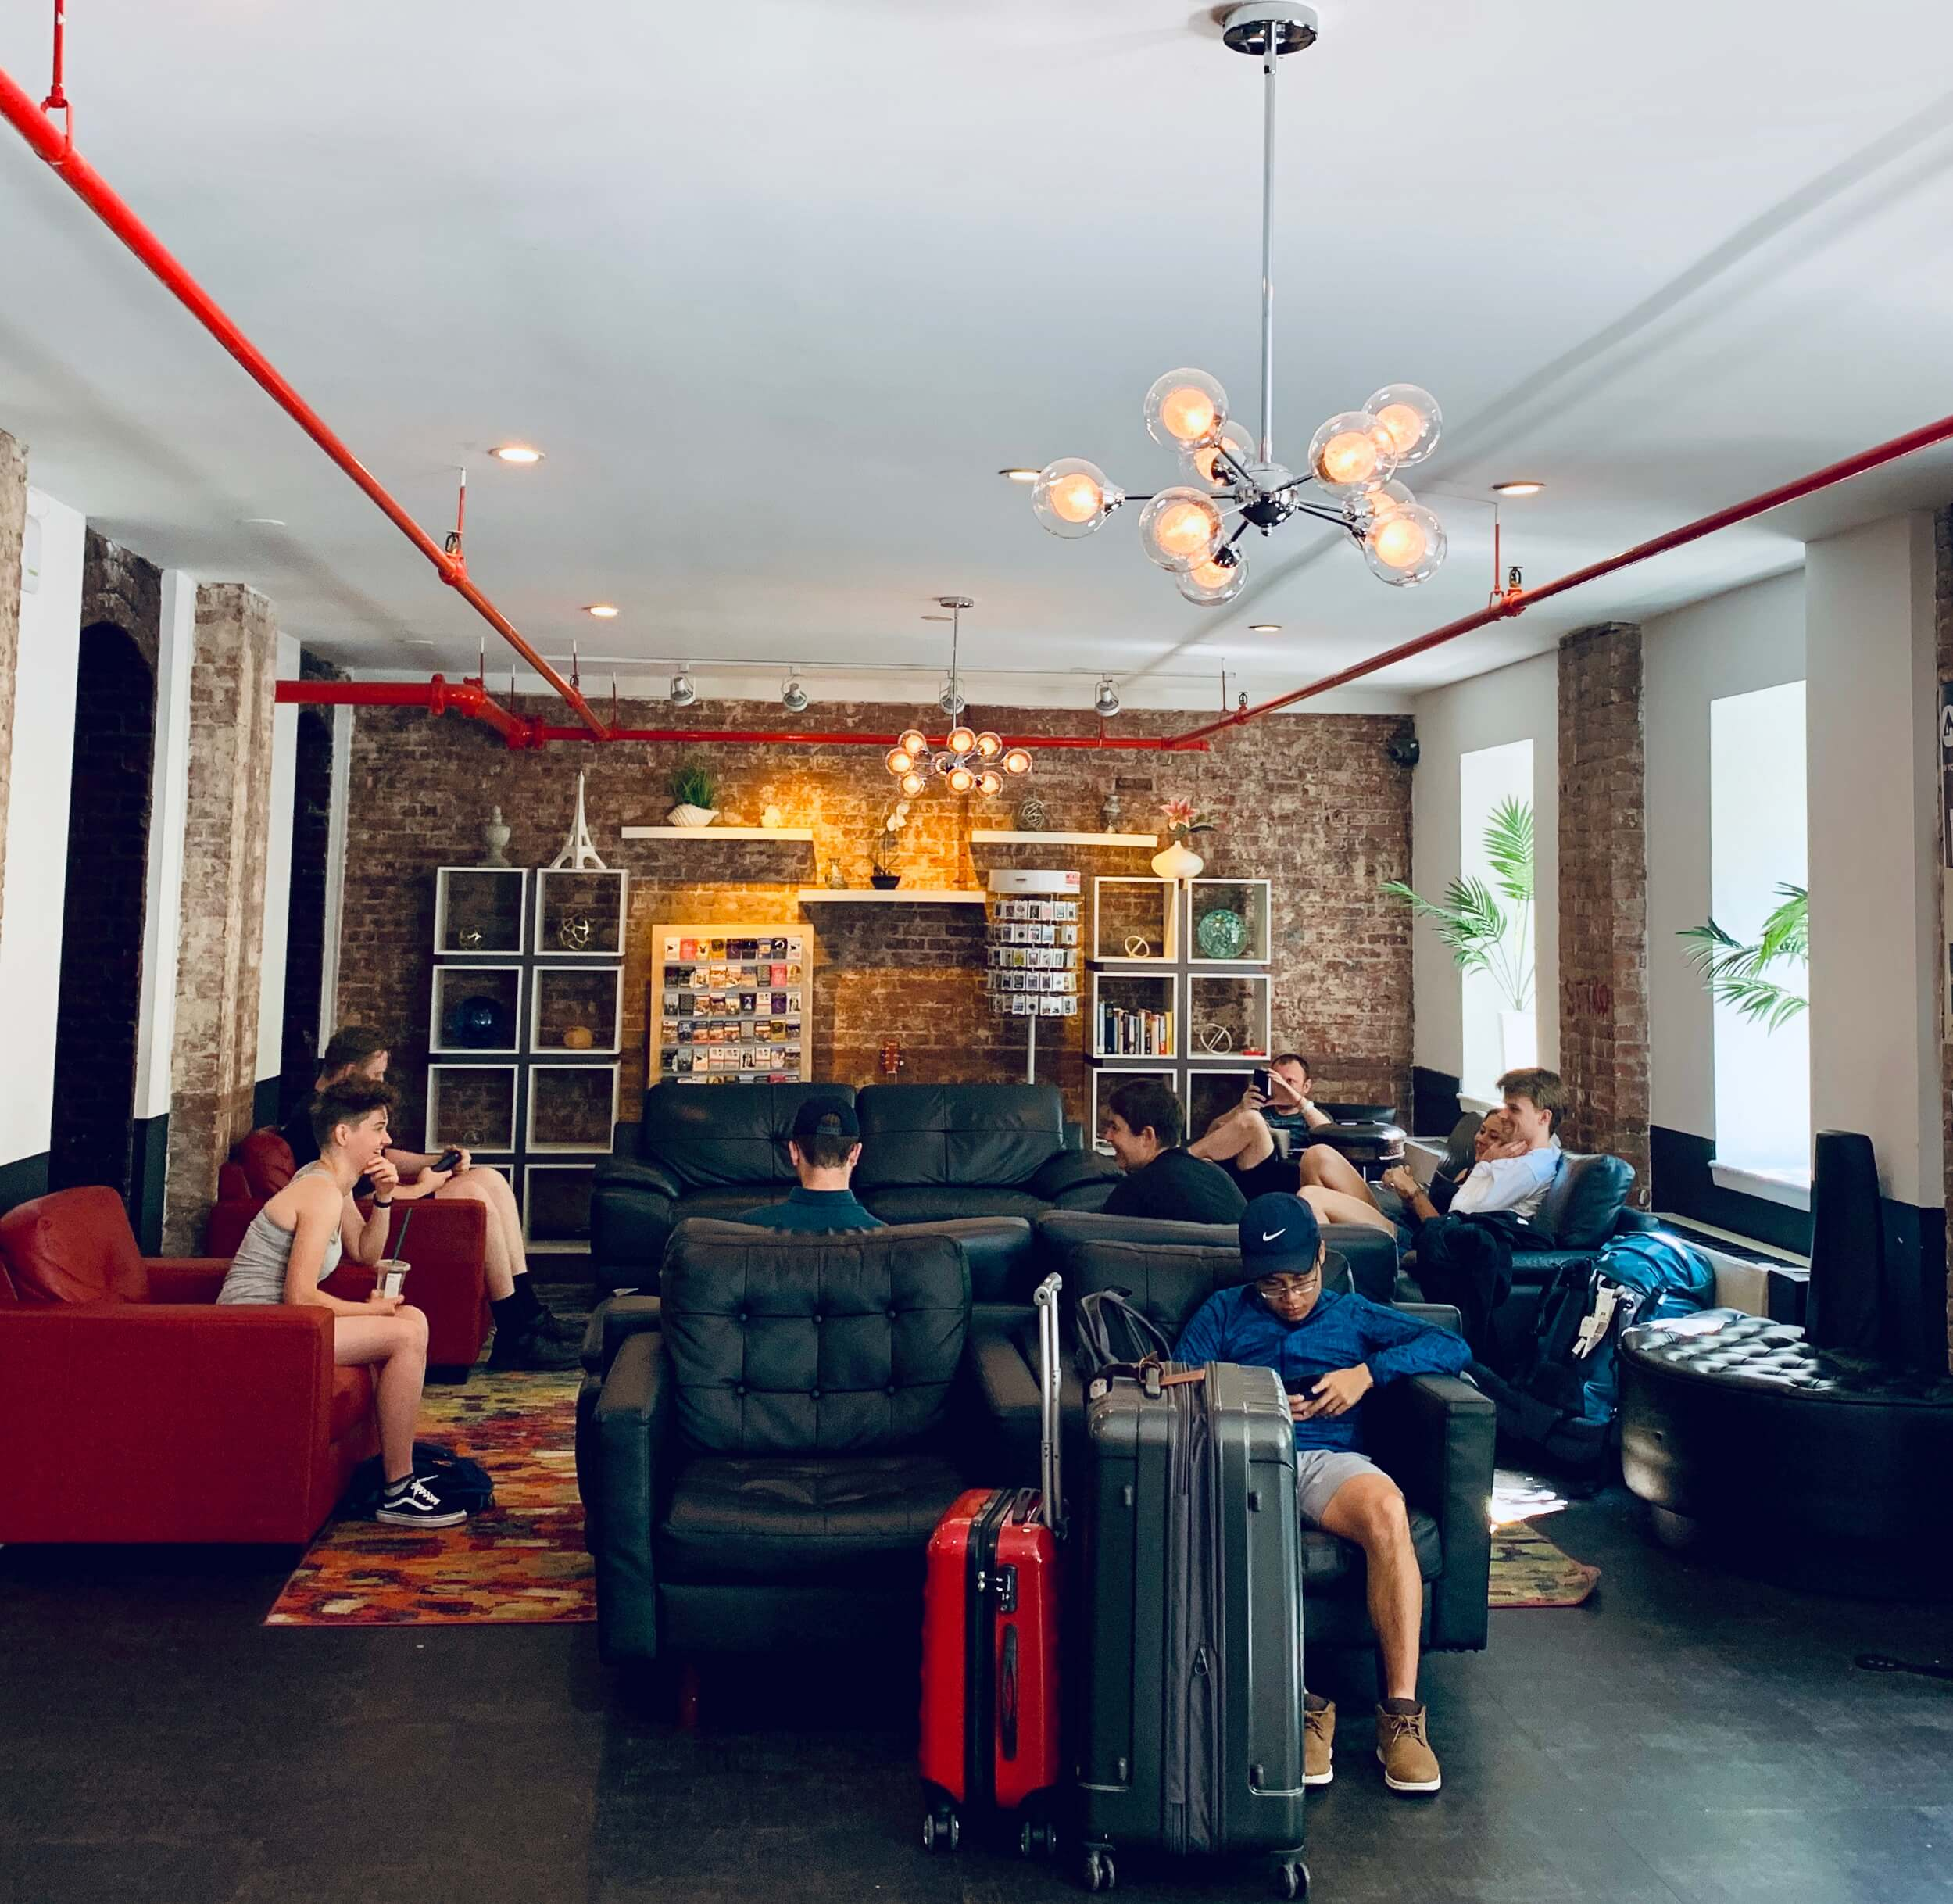 My favourite budget places to stay in New York -